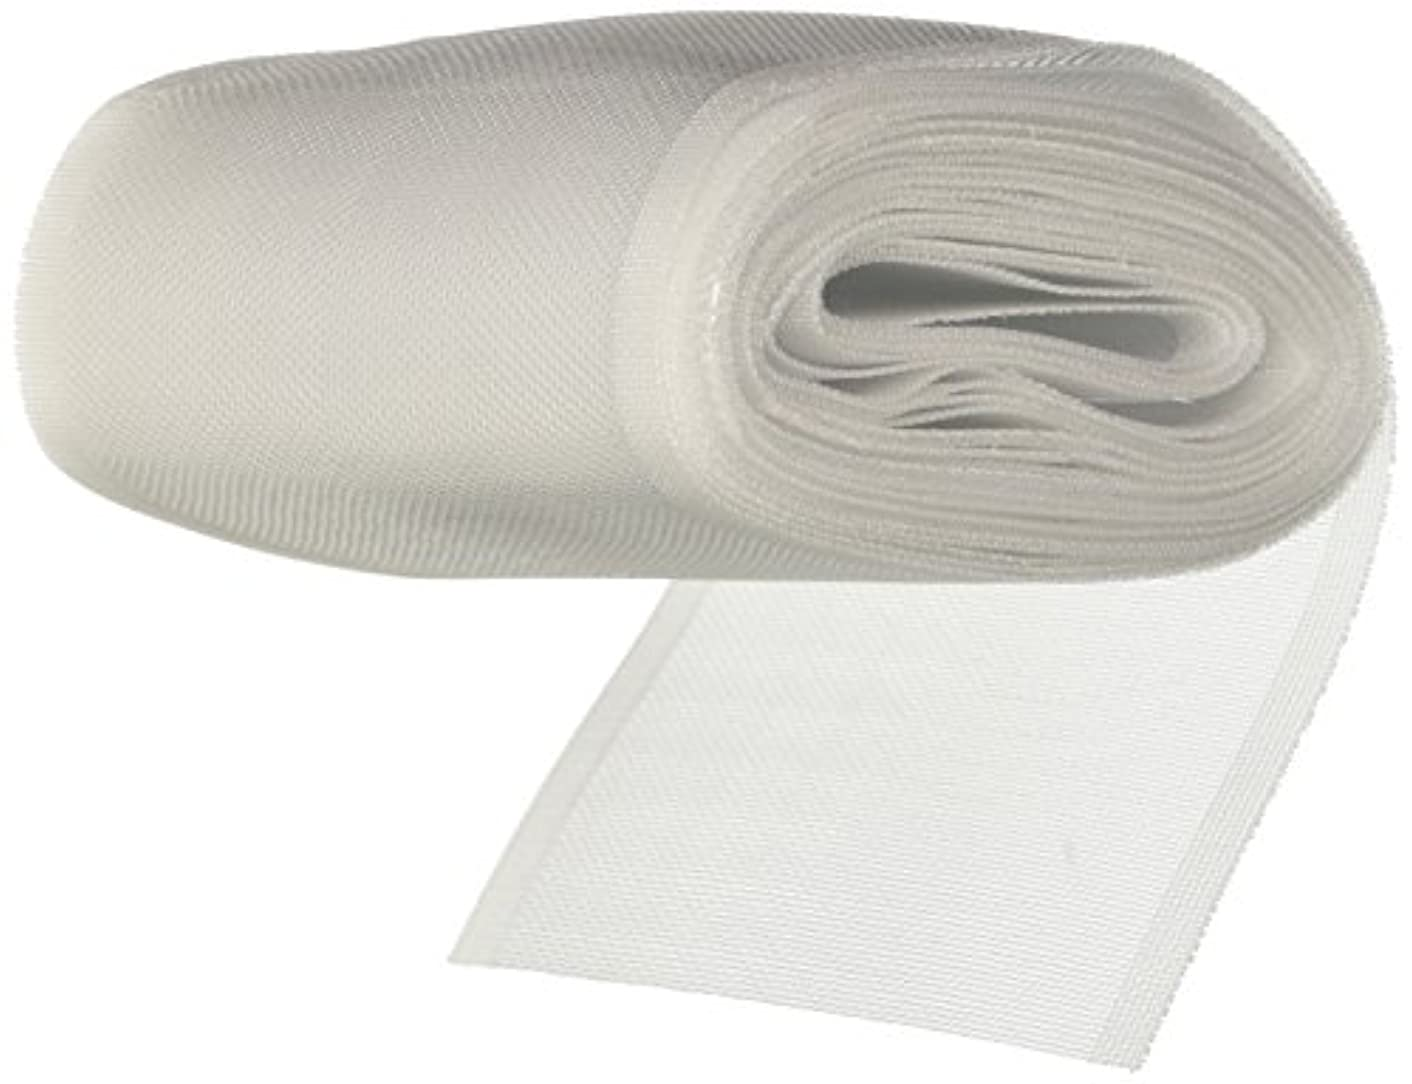 Dritz Home 44500 Woven Rod Loop Tape, 4-Inch x 6-Yards, White